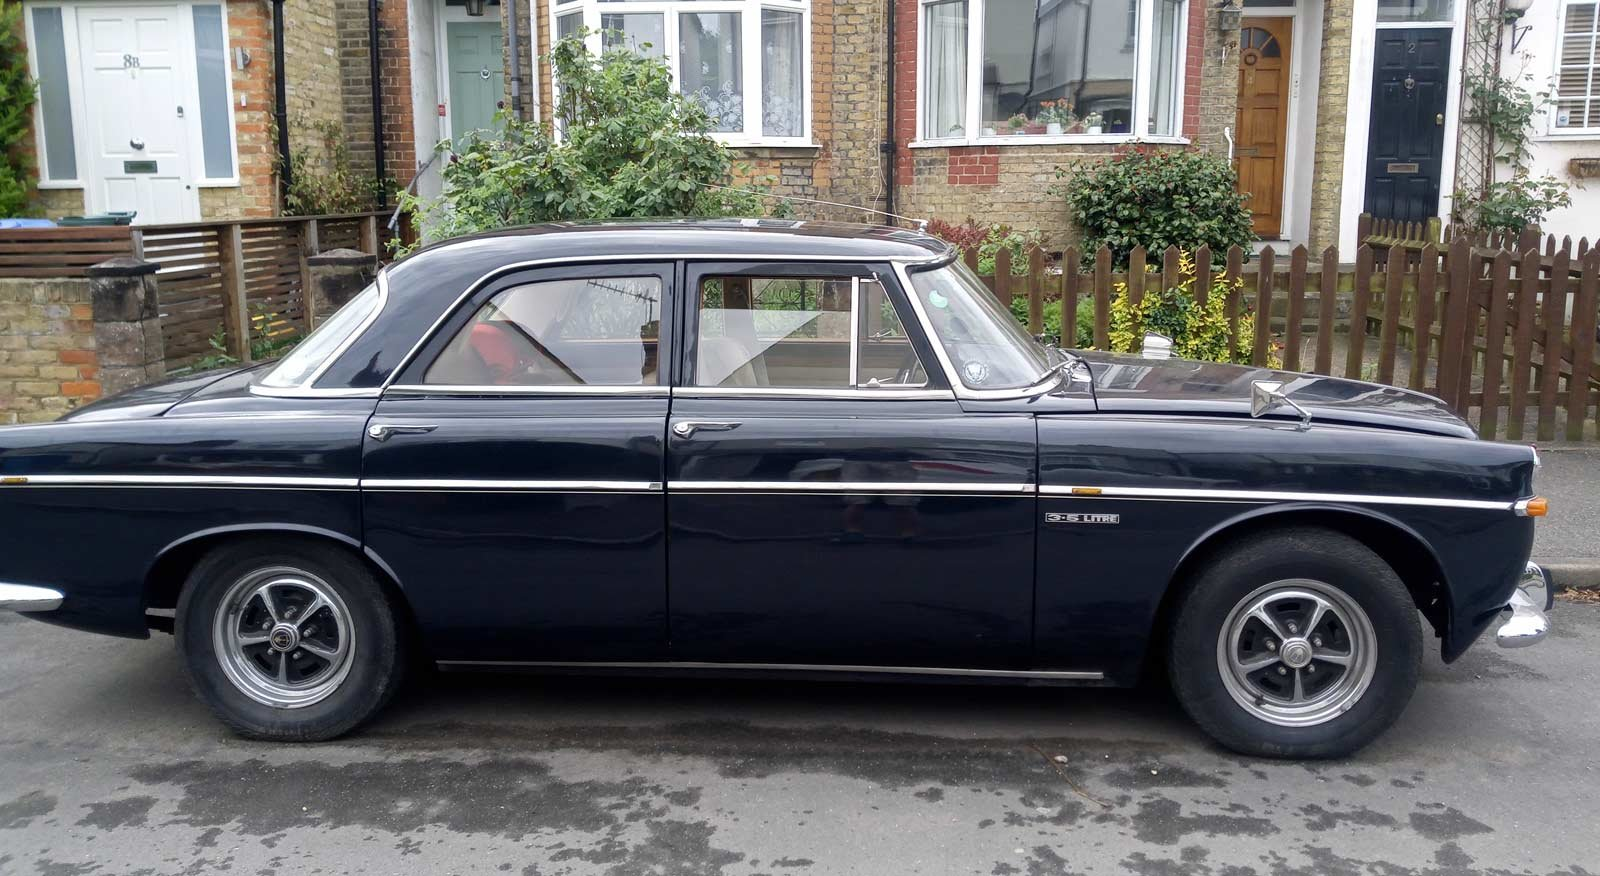 1970 Rover p5b Saloon 3.5 V8  - 66k SOLD (picture 5 of 5)